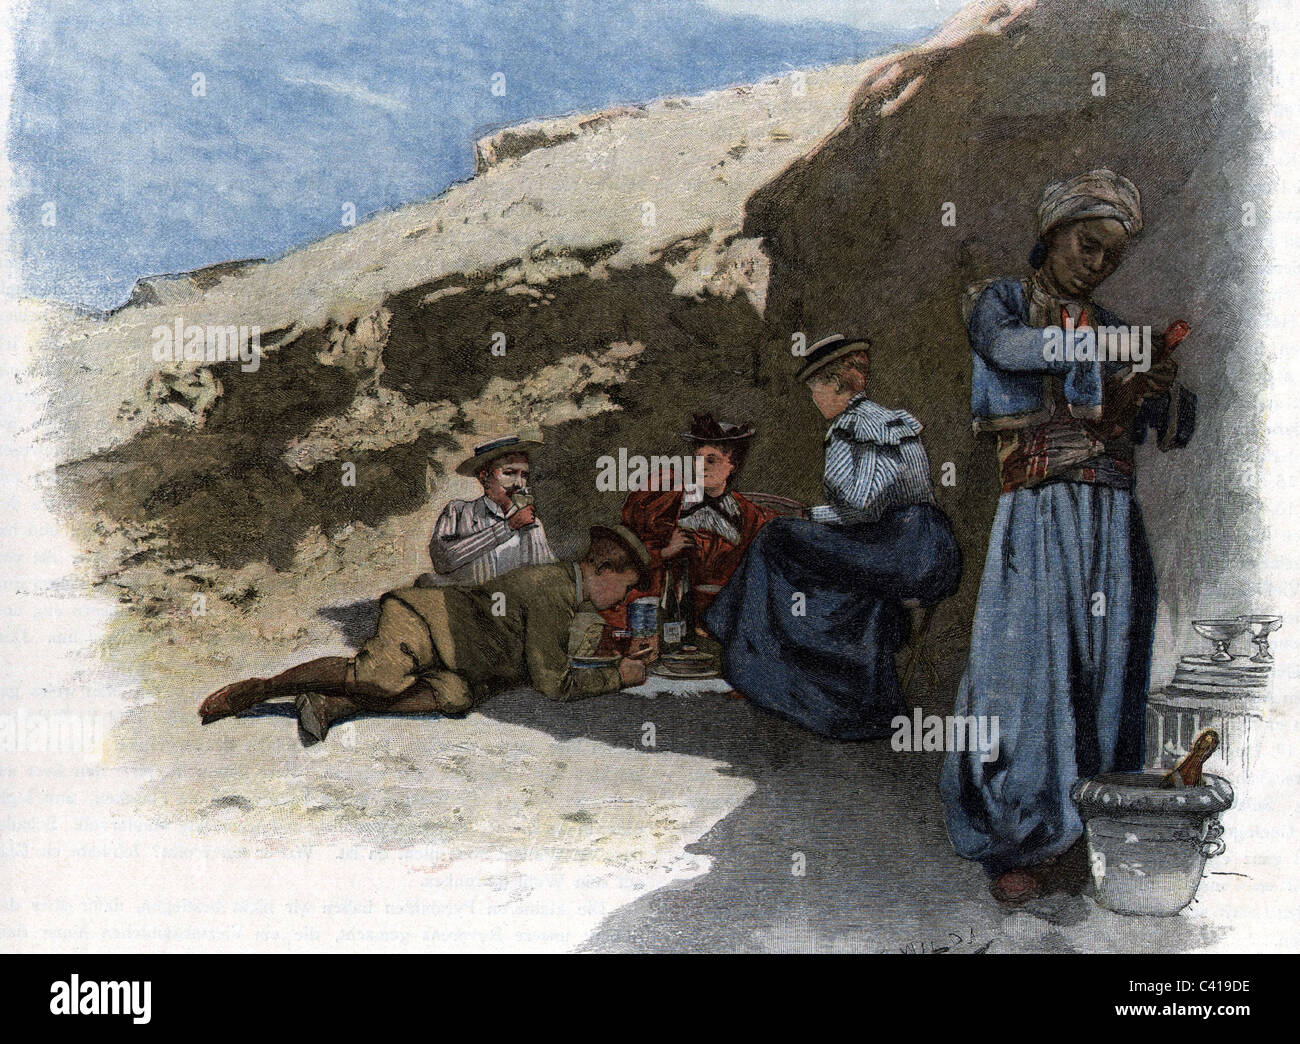 tourism, tour group during rest in rocky landscape, after watercolour by Charles Wilda, wood engraving, circa 1905, - Stock Image